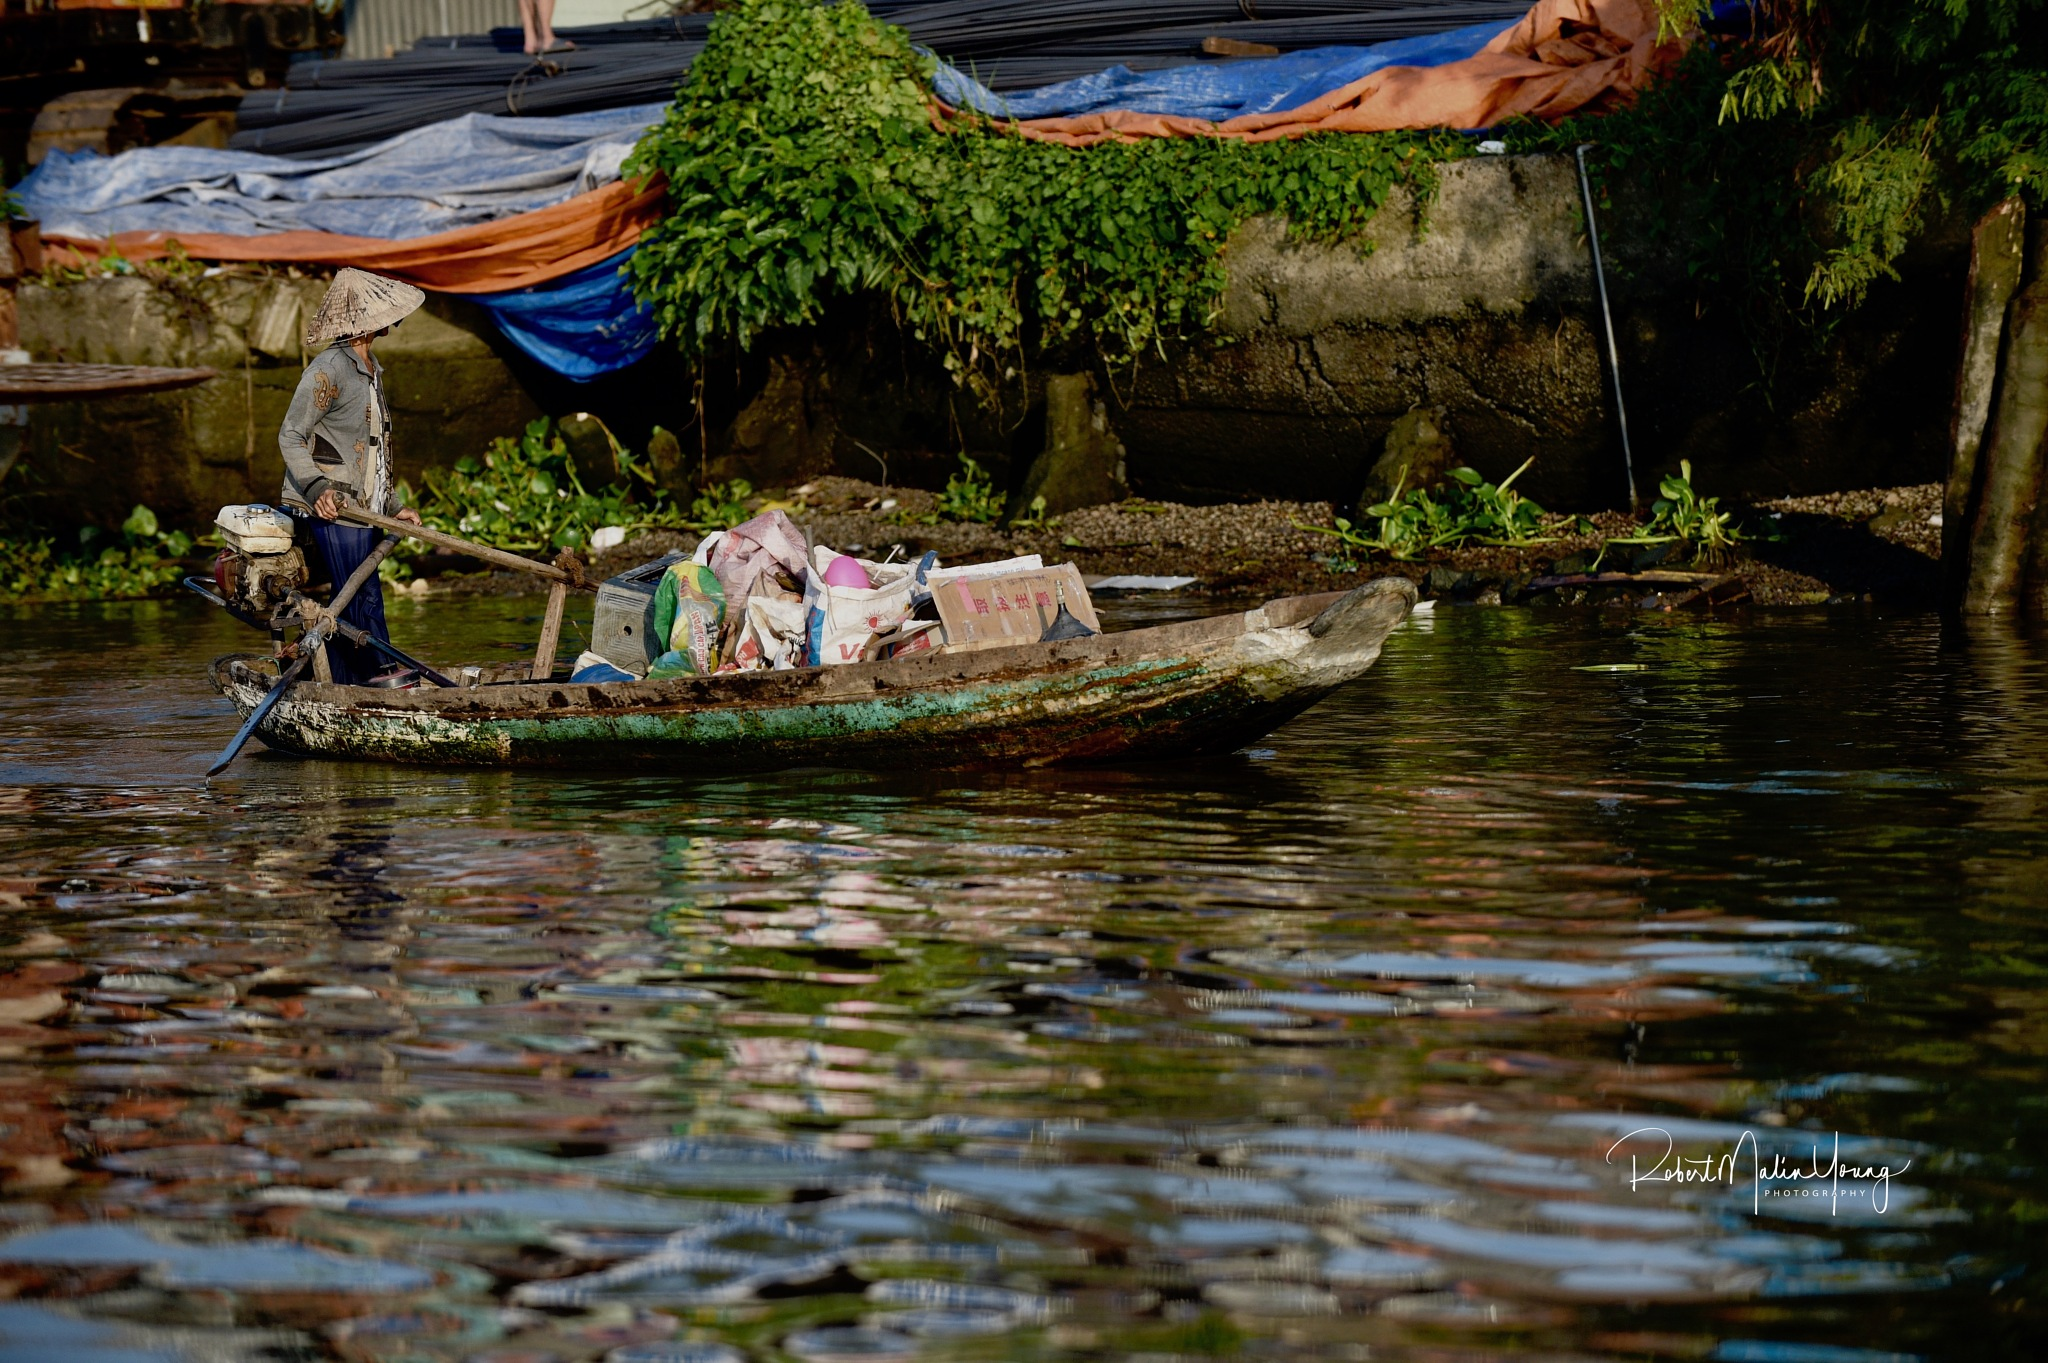 Up the Mekong - Viet Nam 2018 by Robert Malin Young